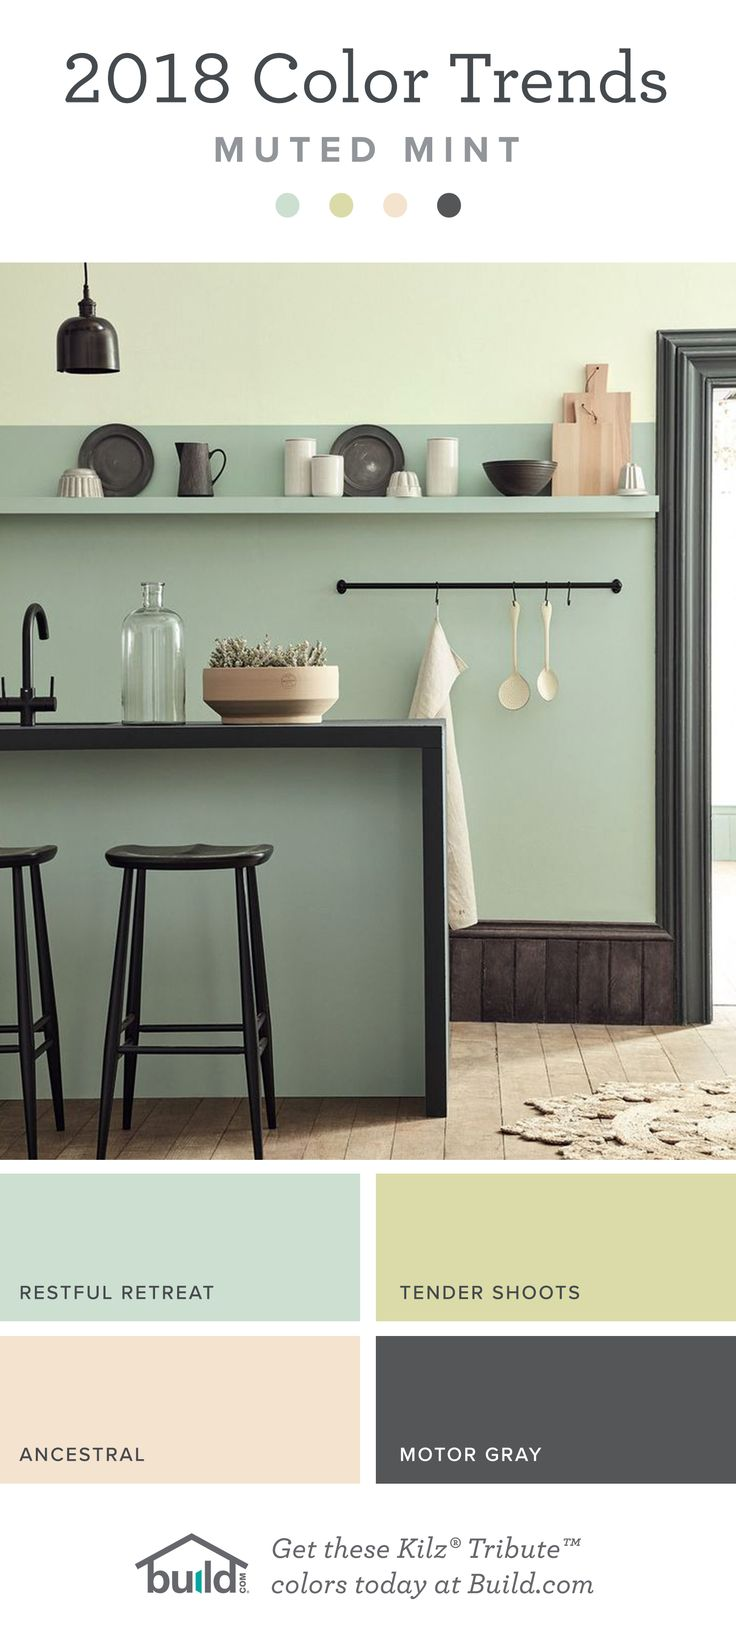 2018 Color Trends - Muted Mint